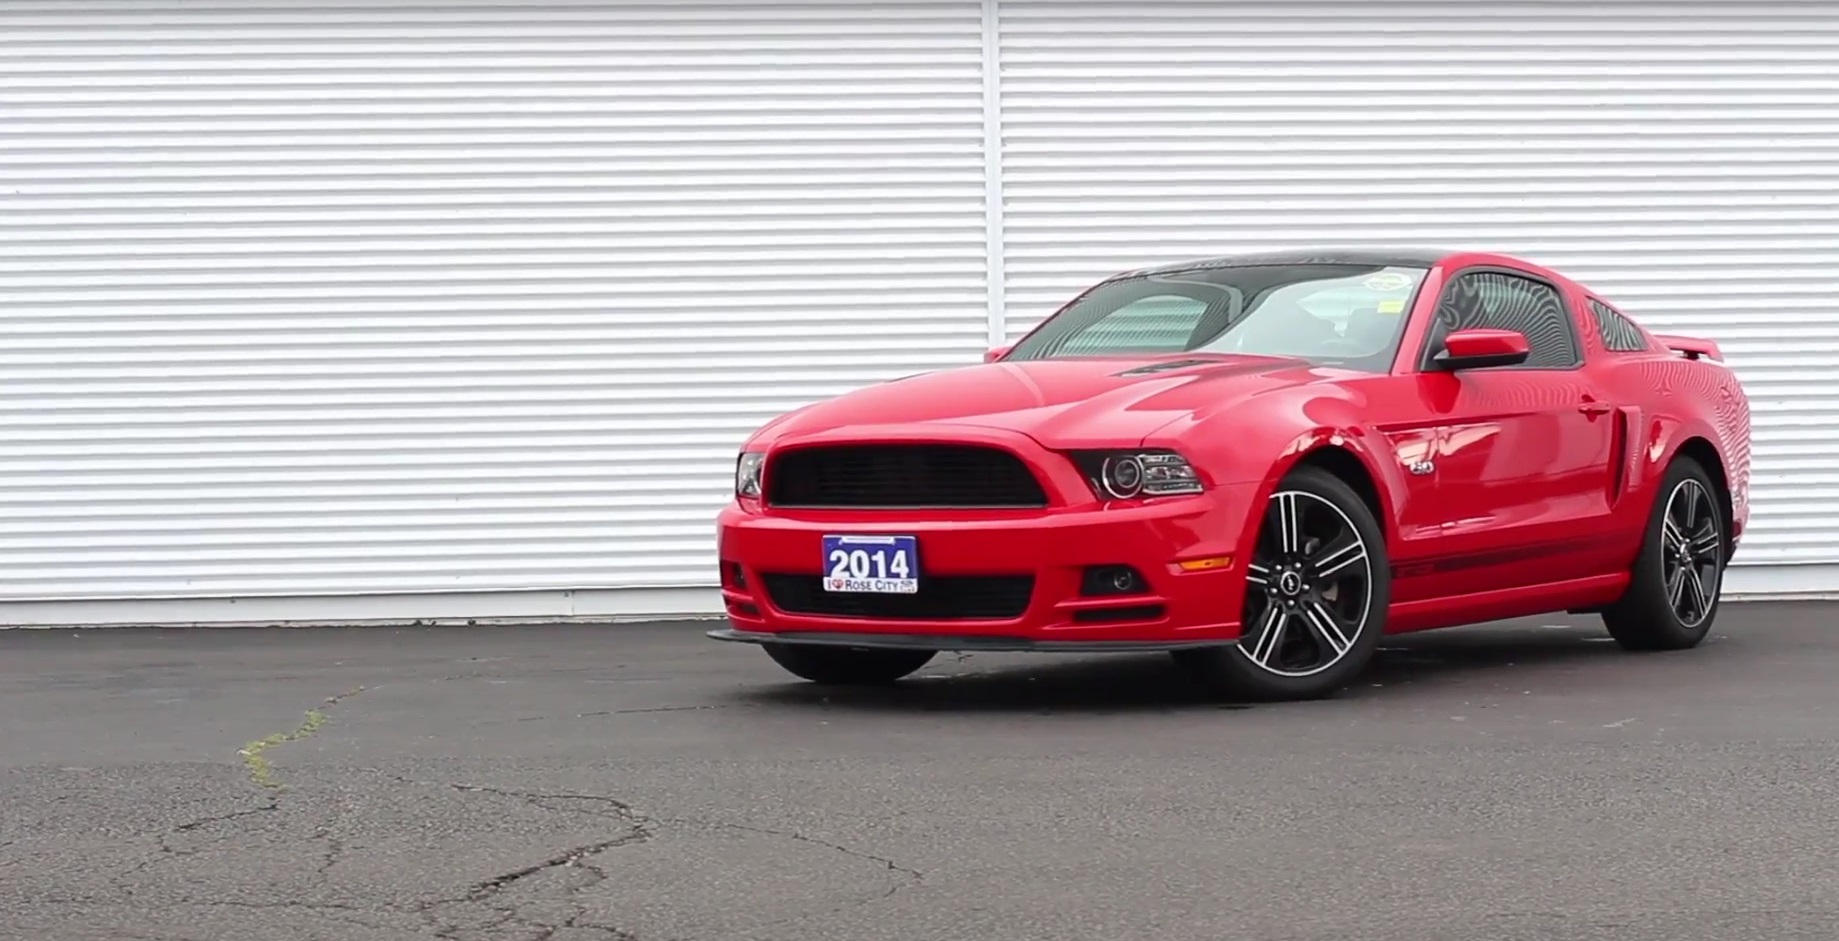 Video: 2014 Ford Mustang GT California Special Review - The Last SRA Mustang